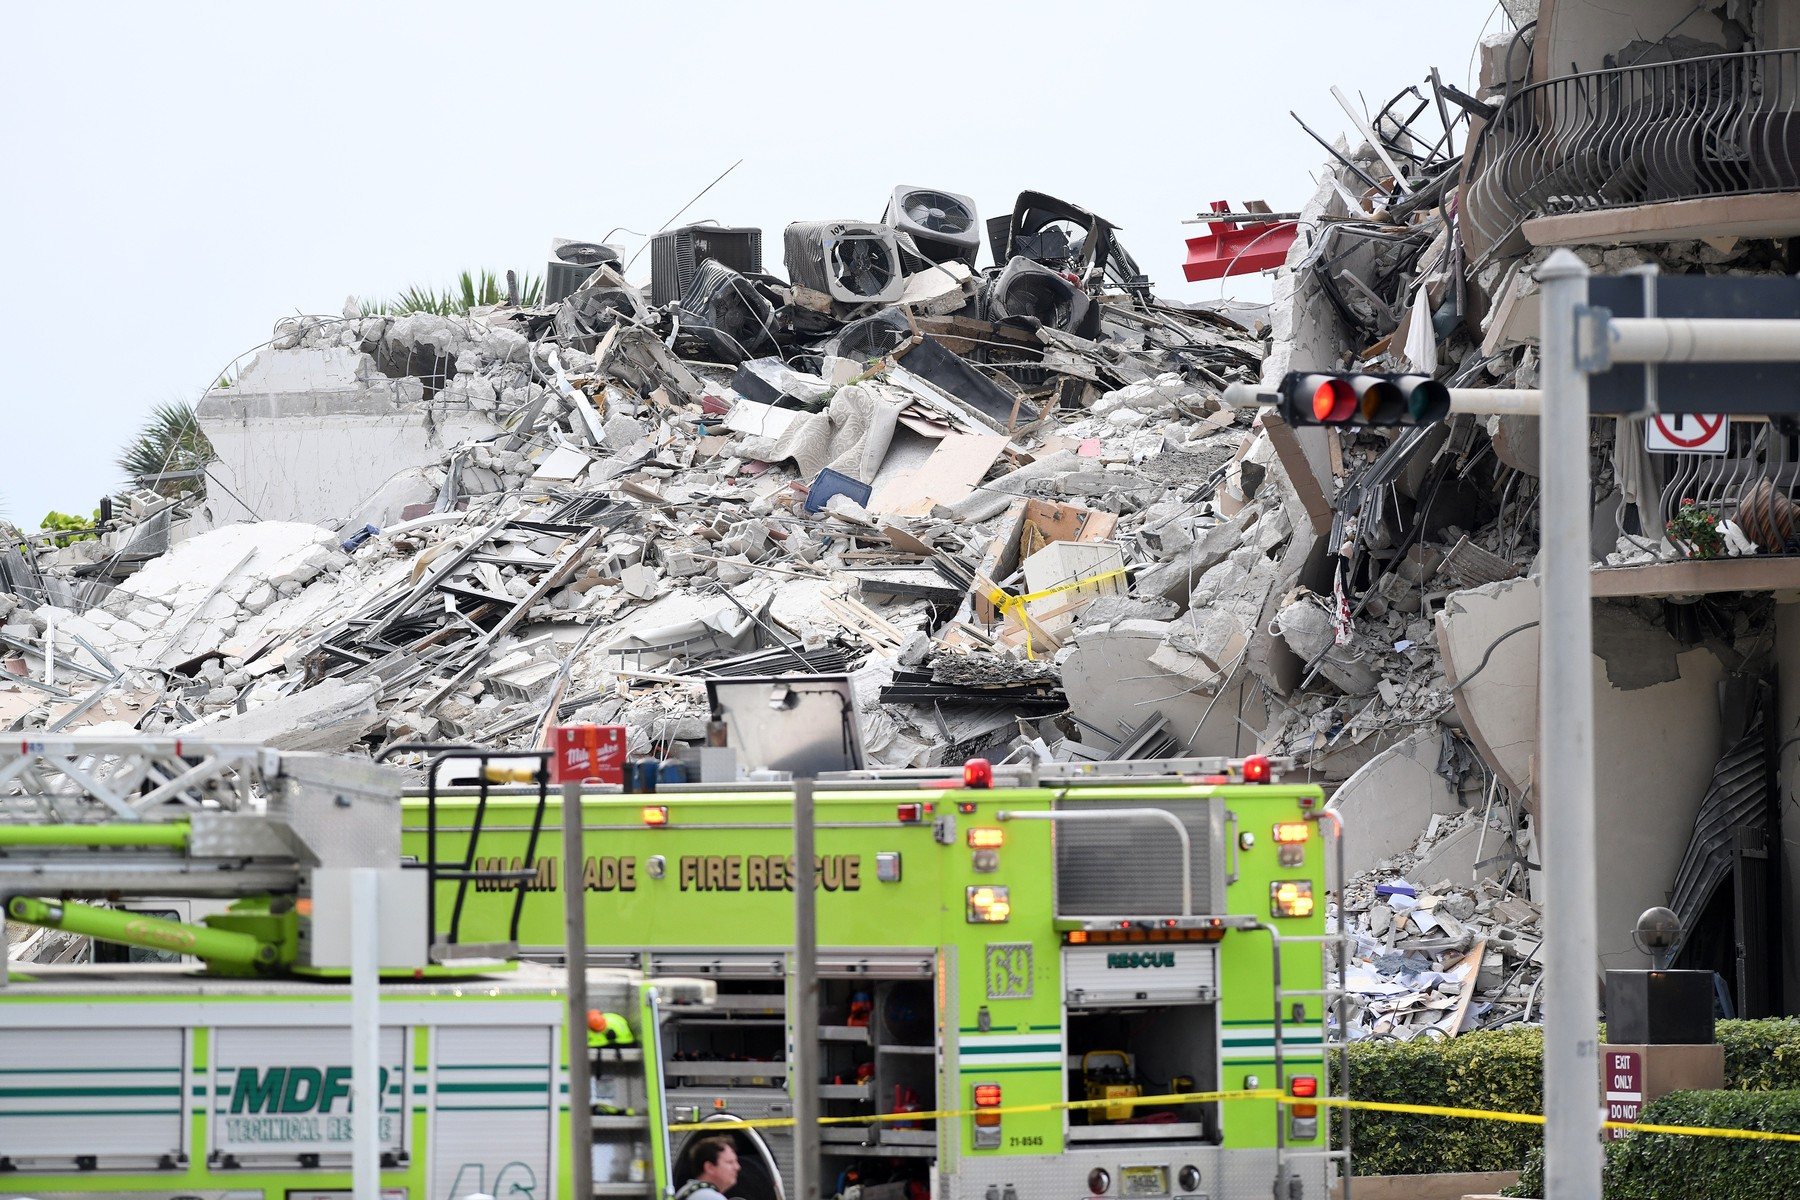 Massive rubble pile is seen at location of residential condo collapse in upscale Miami Beach neighborhood